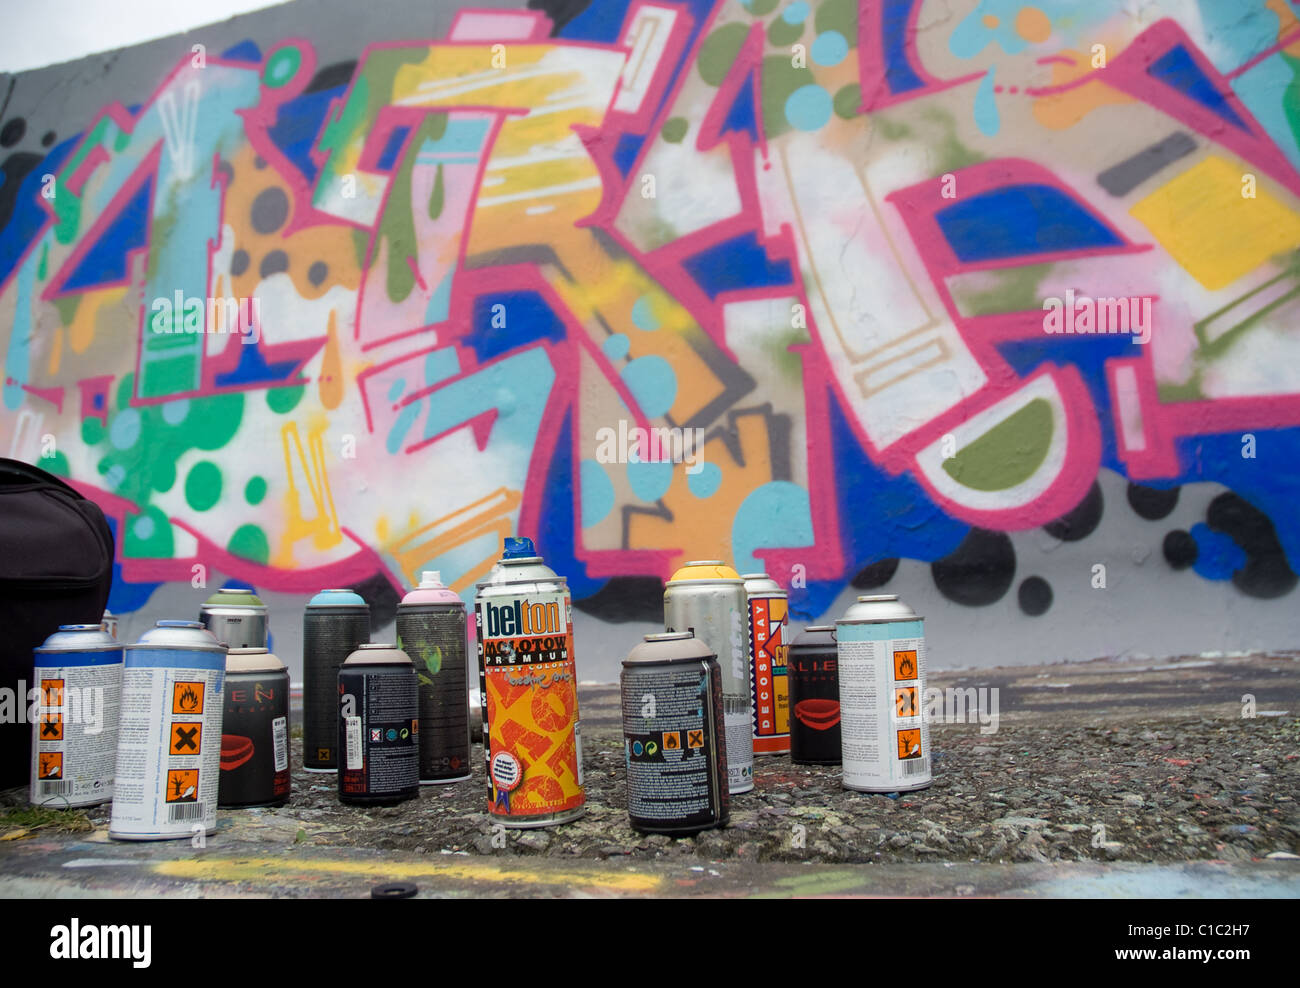 Graffiti artist`s spray paint cans Stock Photo: 35300867 - Alamy